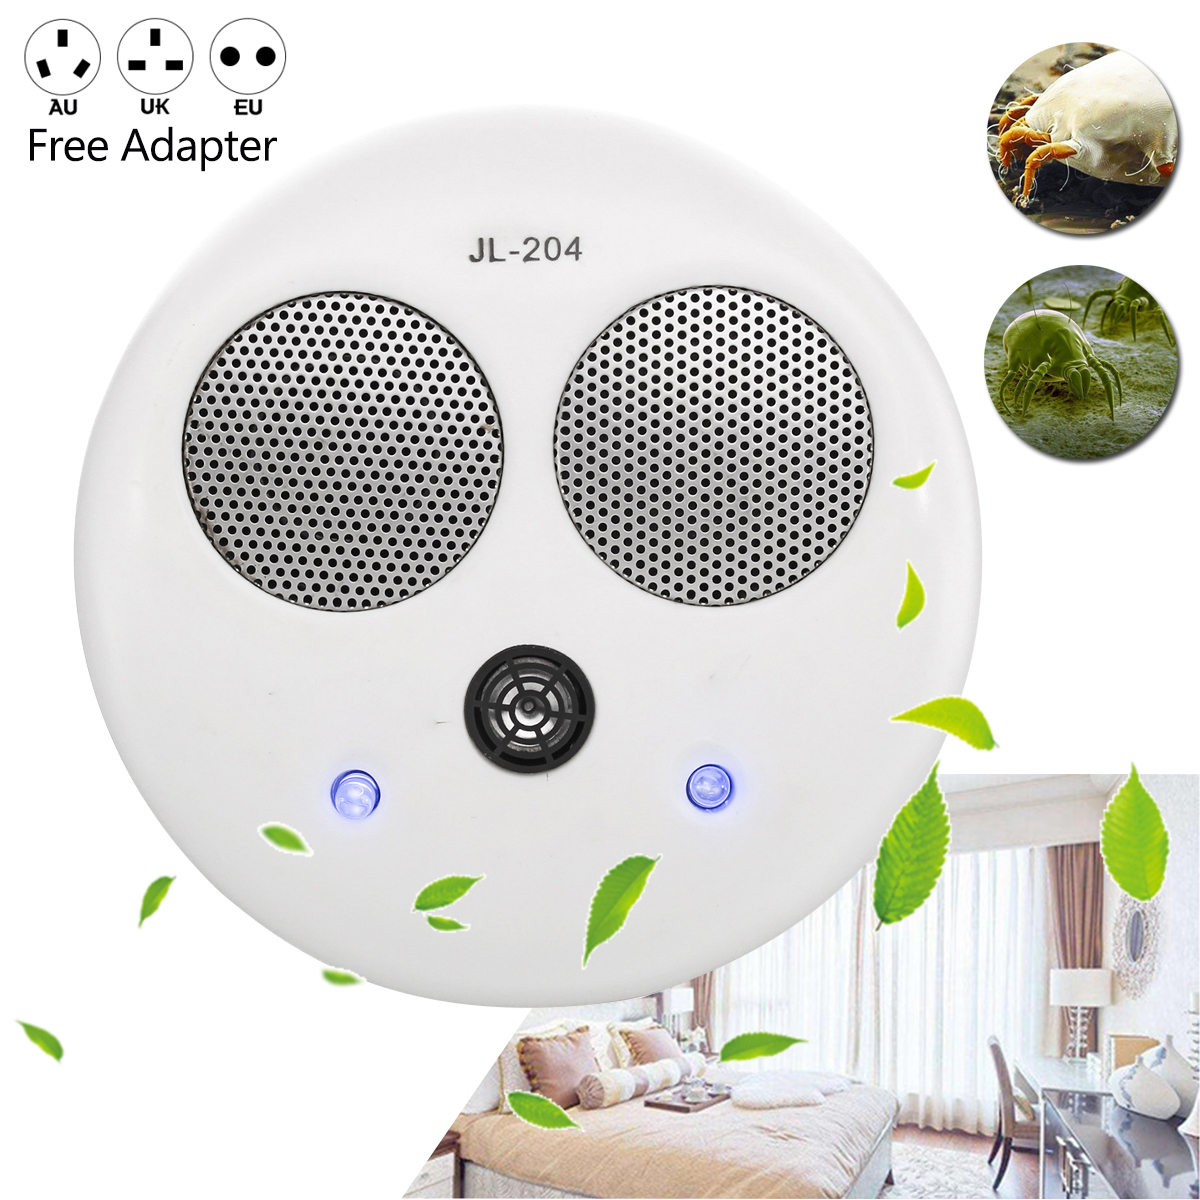 Mini Electronic Ultrasonic Cleaner Dust Mite Controller Cleaner Killer Physical Anti 80 Bed Mites Killing Device Coverage Home цена